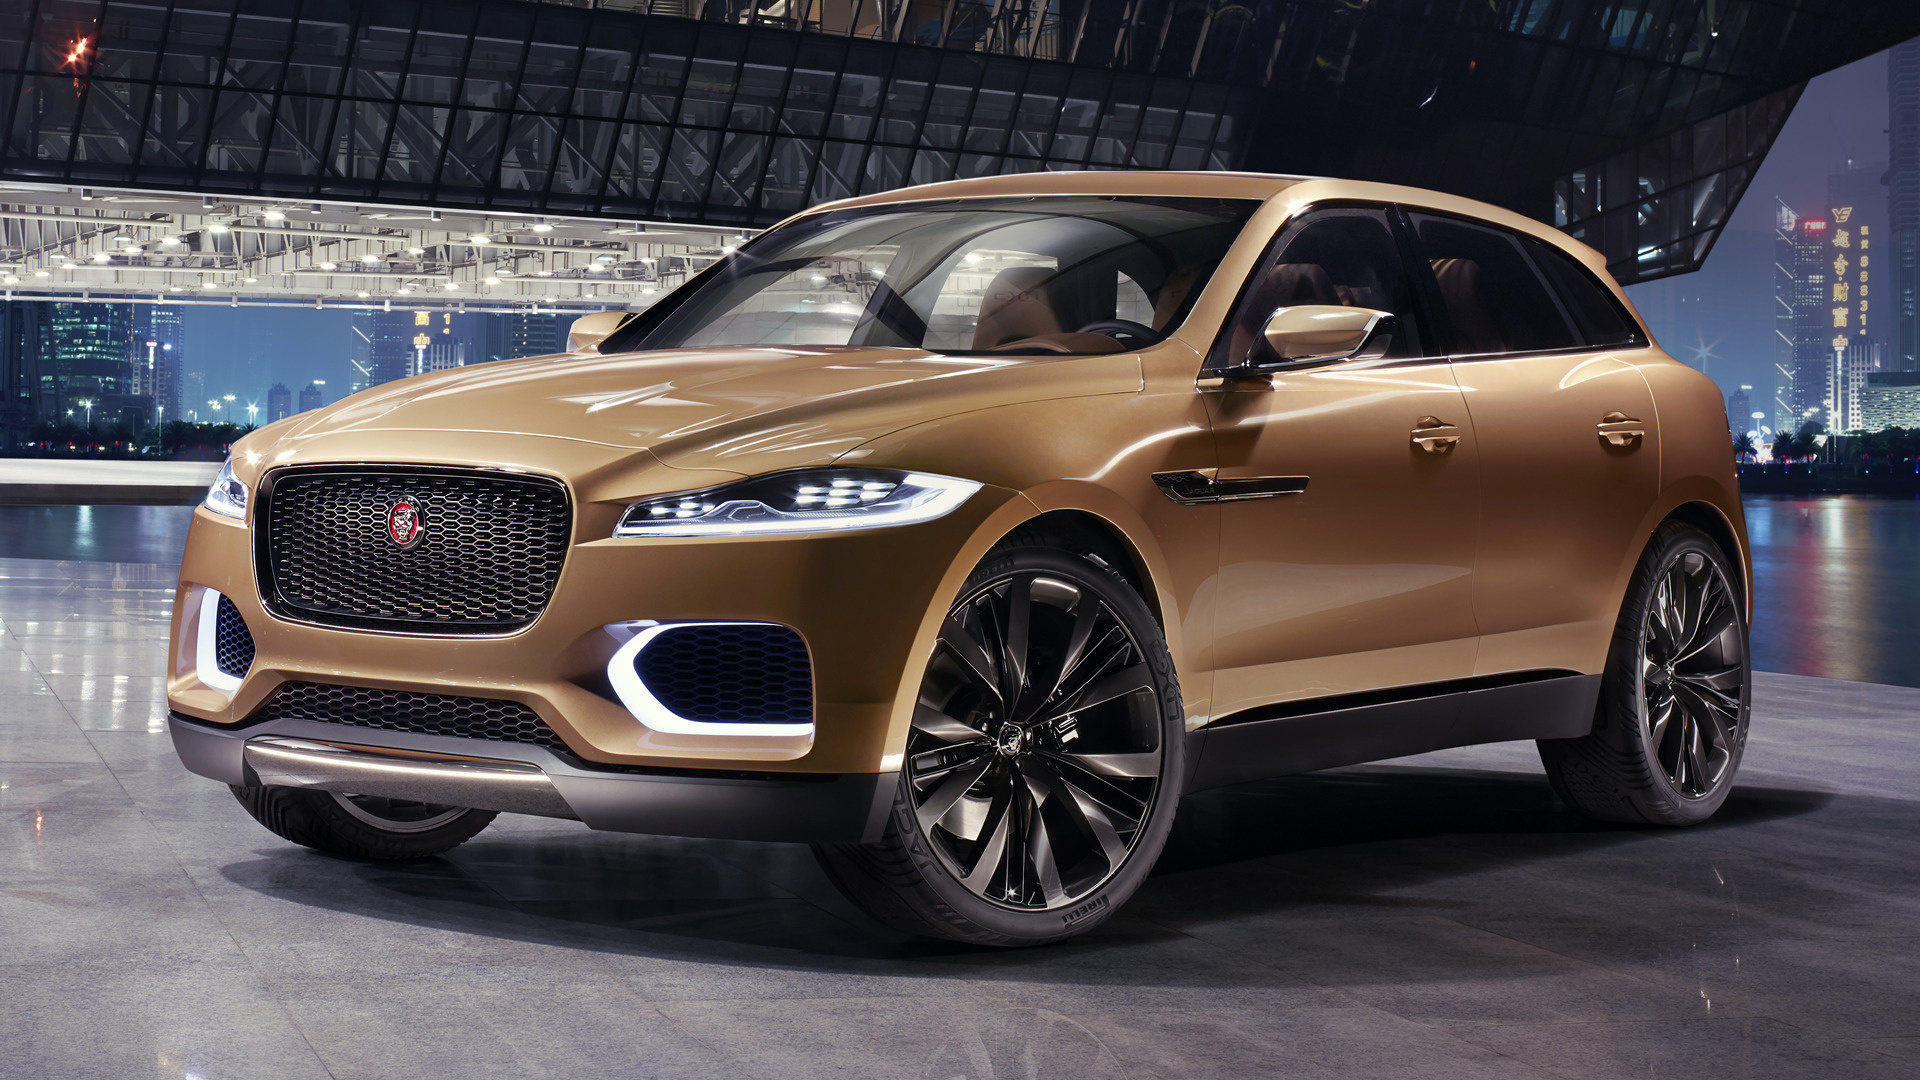 2013 Jaguar C-X17 5-Seater Concept - Wallpapers and HD ...